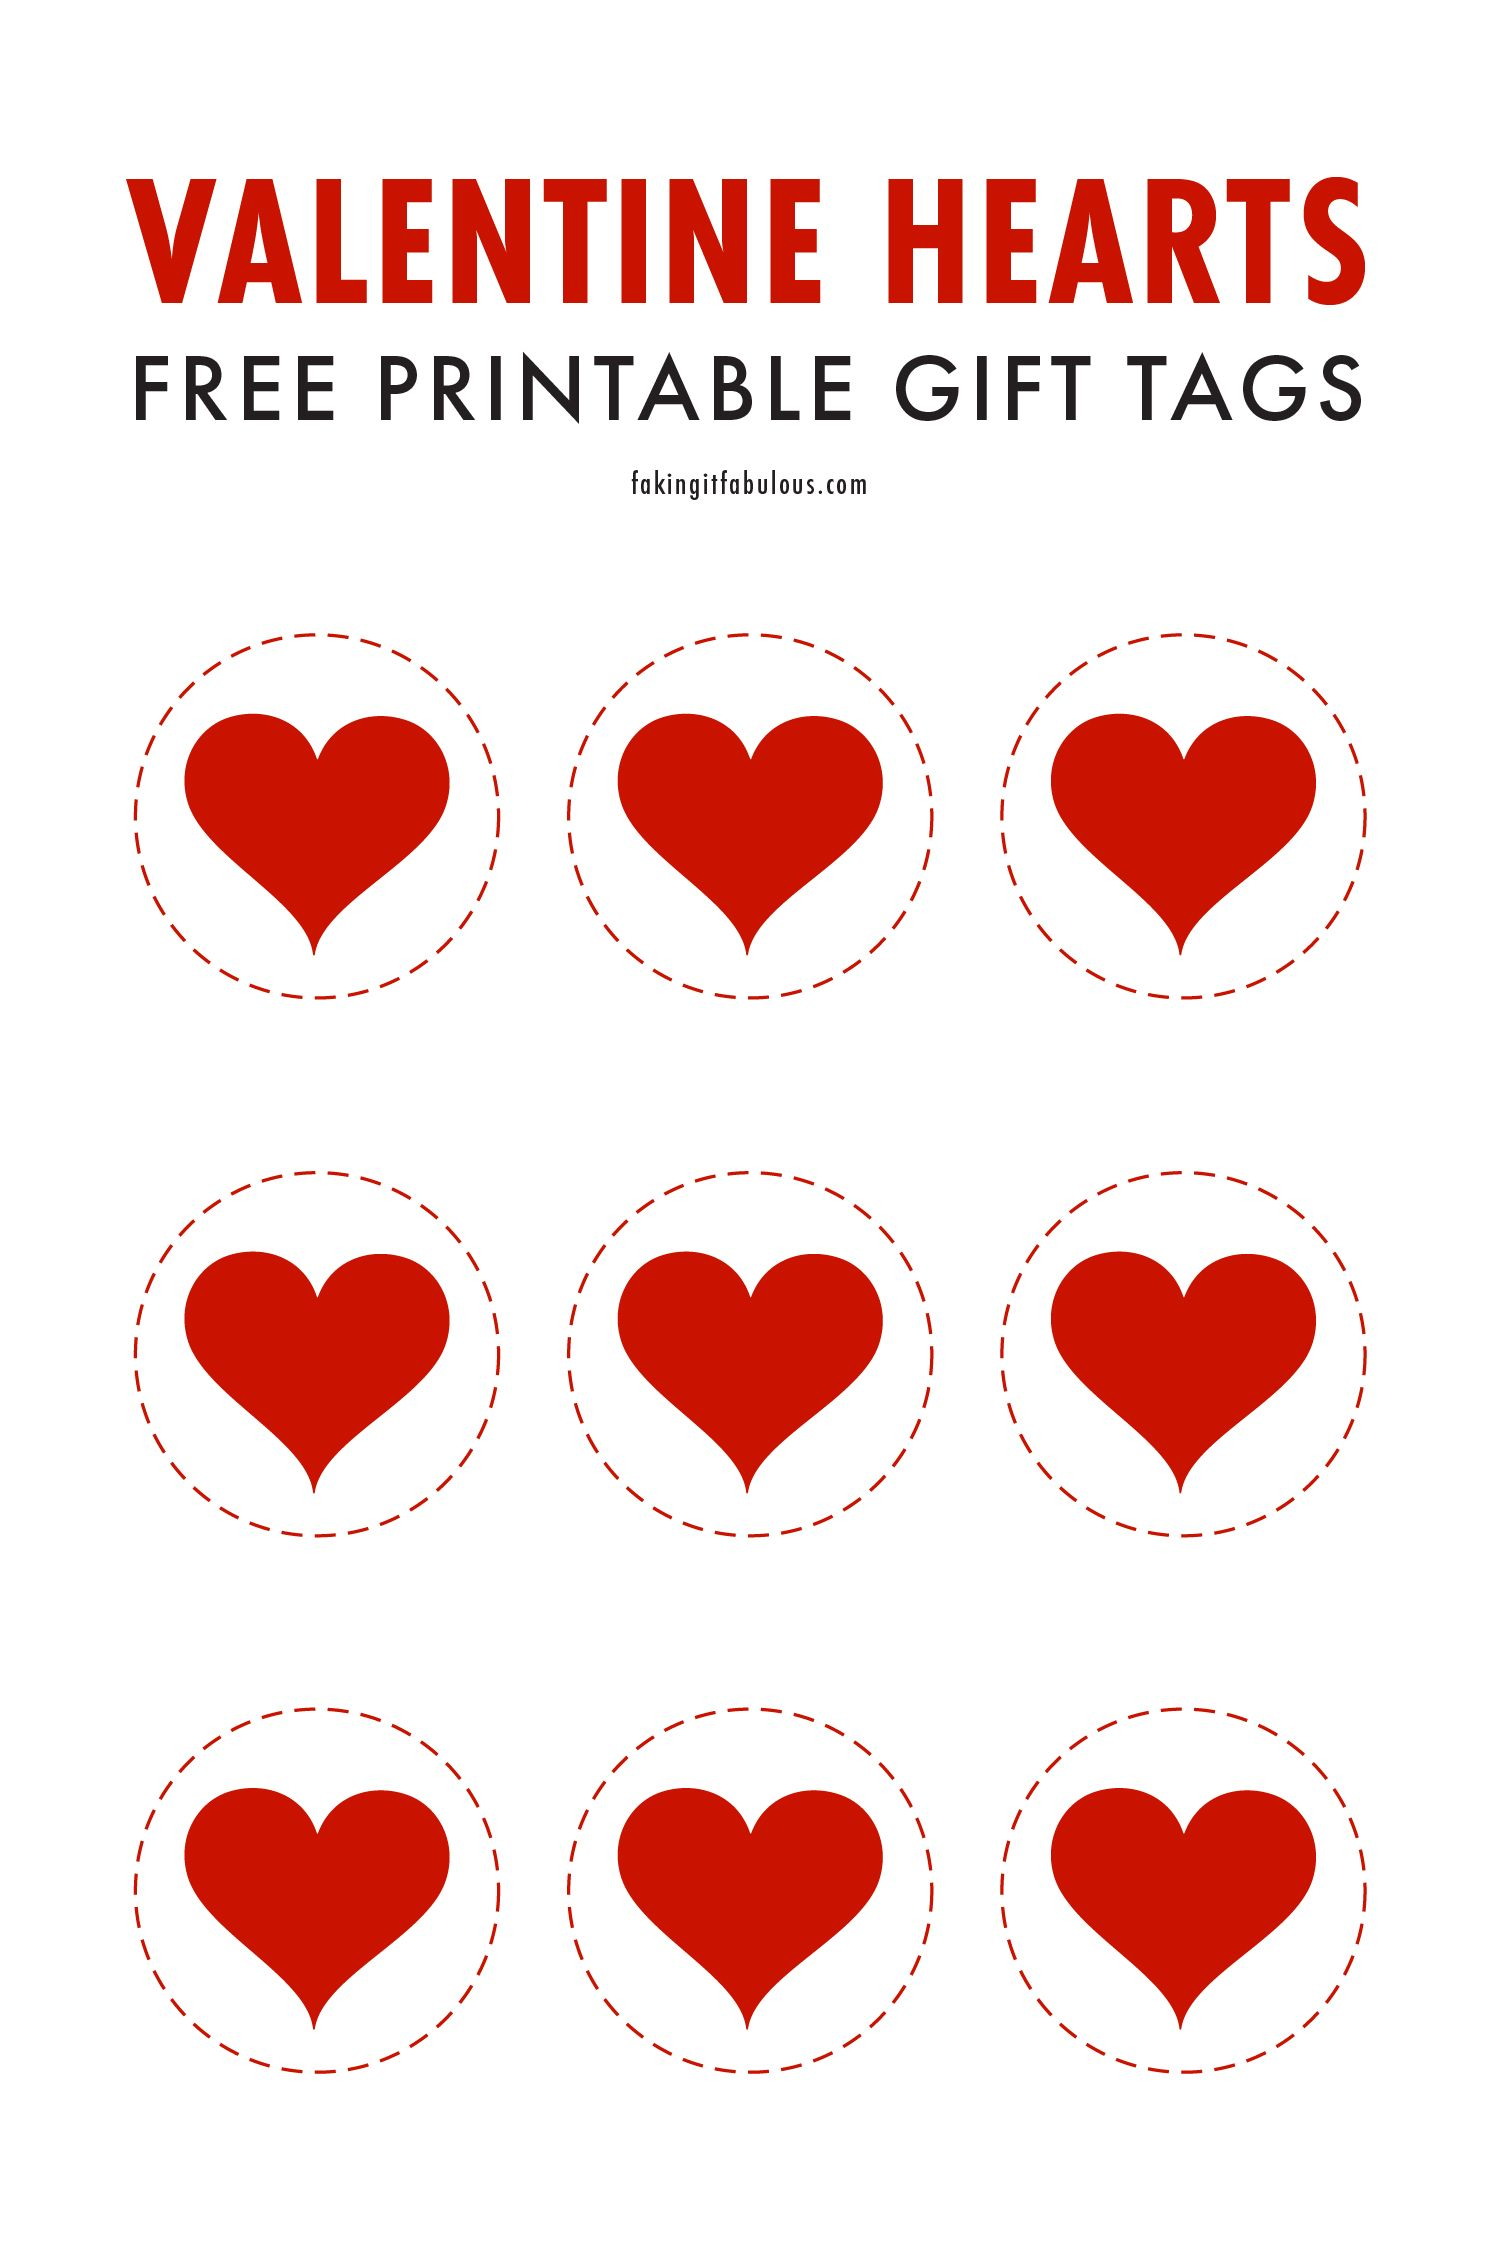 Valentine Hearts Free Printable Gift Tags In 2021 Heart Gift Tags Valentines Printables Free Gift Tags Printable